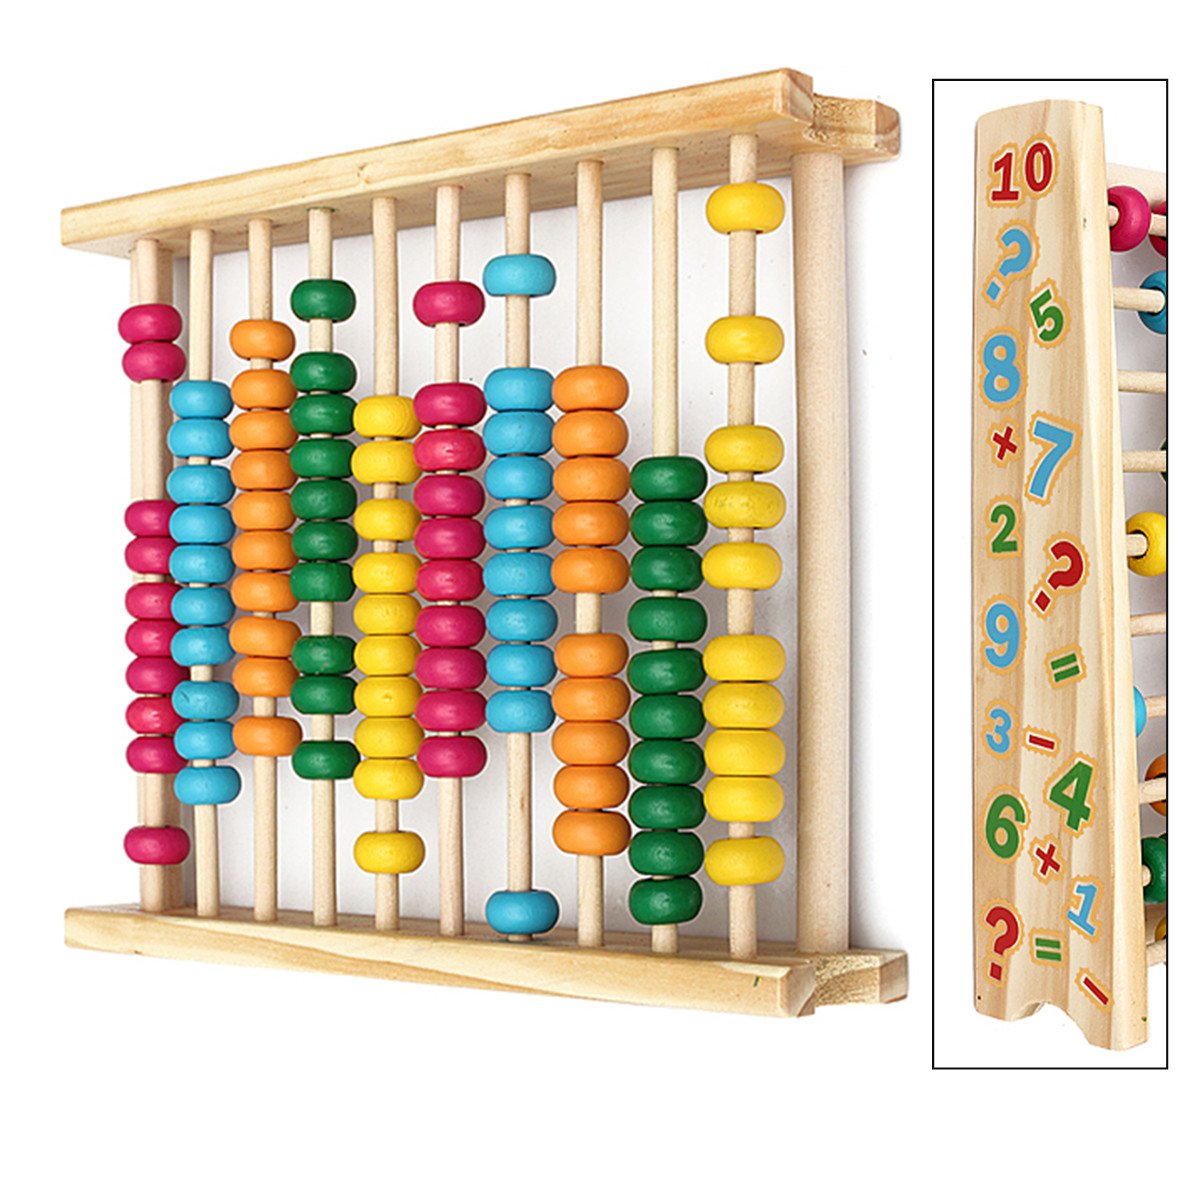 Grtsunsea Wooden Abacus-Classic and Colorful Children Math and Counting Sticks Toy with Free-Standing Frame and 100 Beads-Learning and Educational Toy